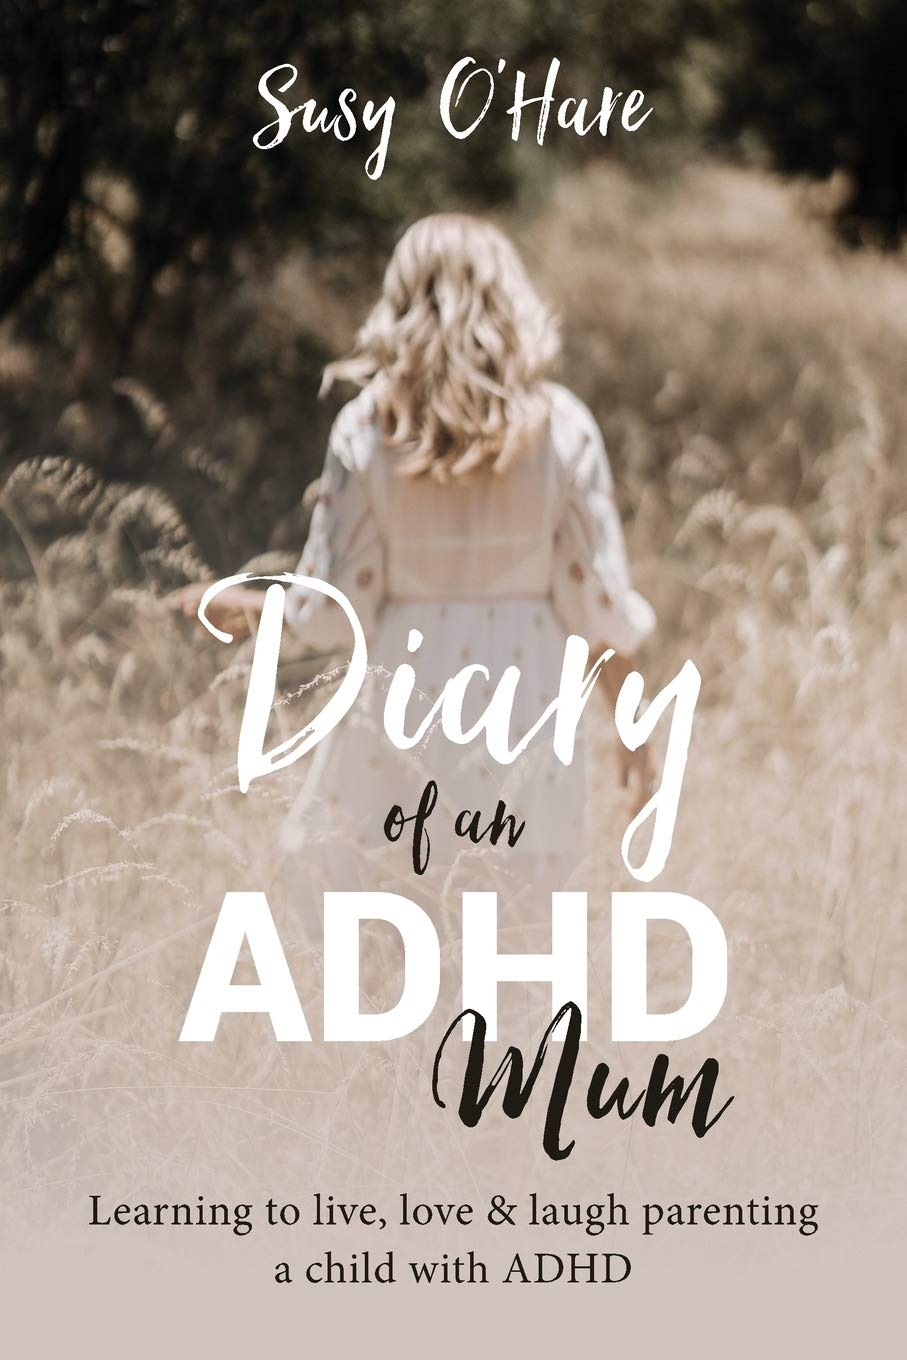 Diary of an ADHD Mum: Learning to live, love & laugh parenting a child with ADHD: O'Hare, Susy: 9781640859296: Books - Amazon.ca